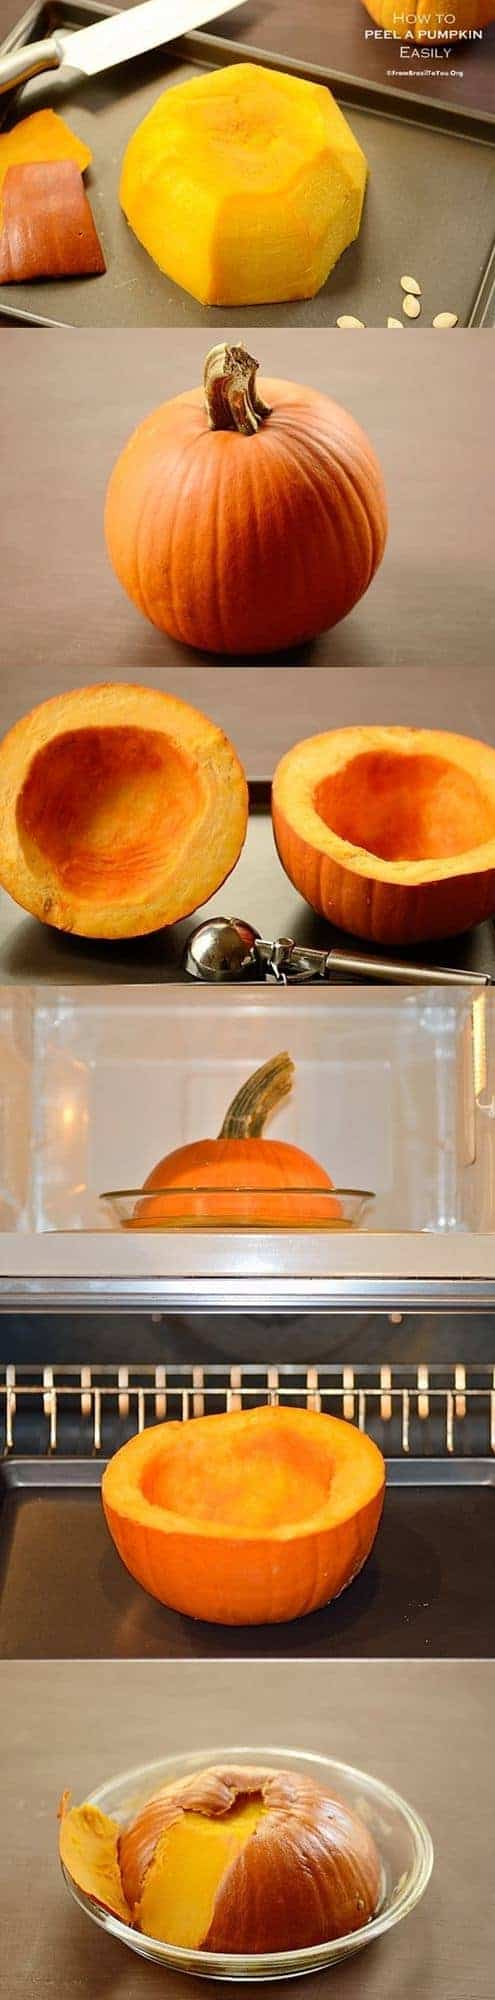 Peeling a pumpkin easily for cooking